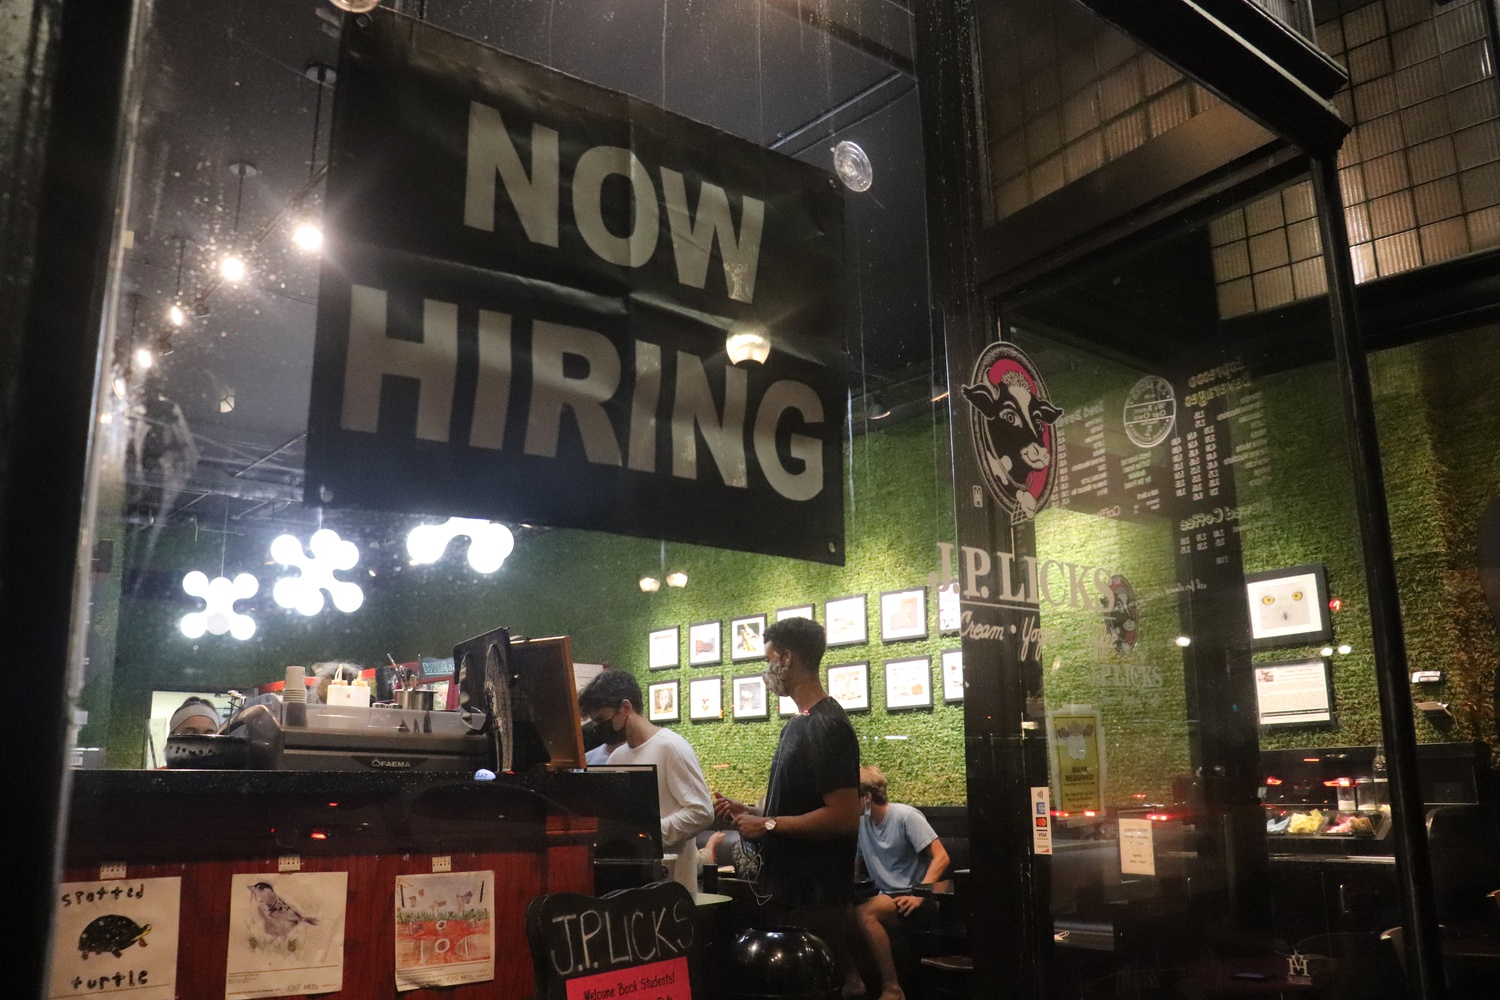 A sign announcing job openings is displayed on the window of J.P. Licks, an ice cream shop in Harvard Square, amid a national shortage of restaurant workers.